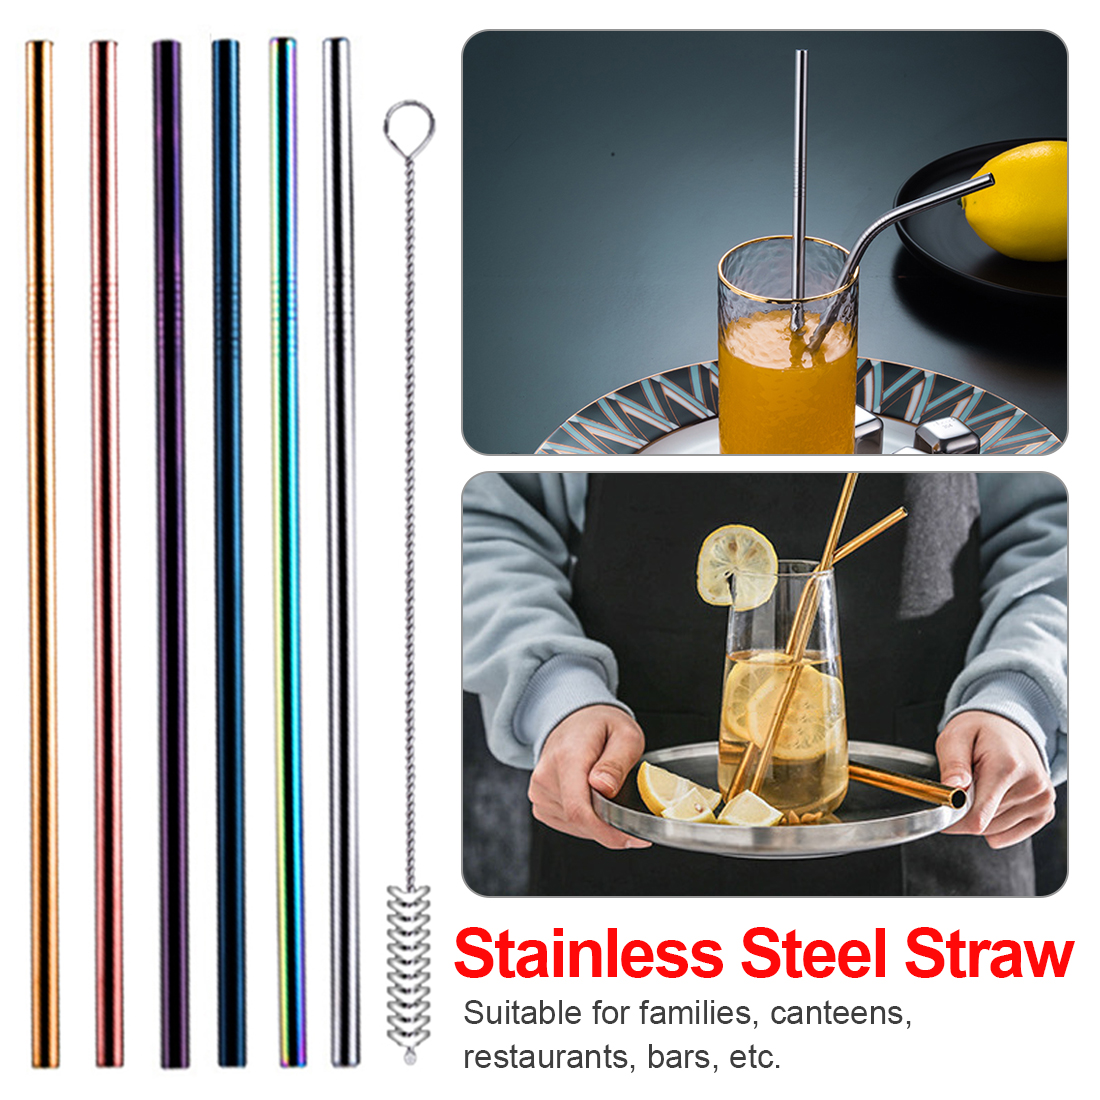 Drinking Straw 4pcs/set Stainless Steel Reusable Metal With Cleaner Brush Kit For Home Party Barware Bar